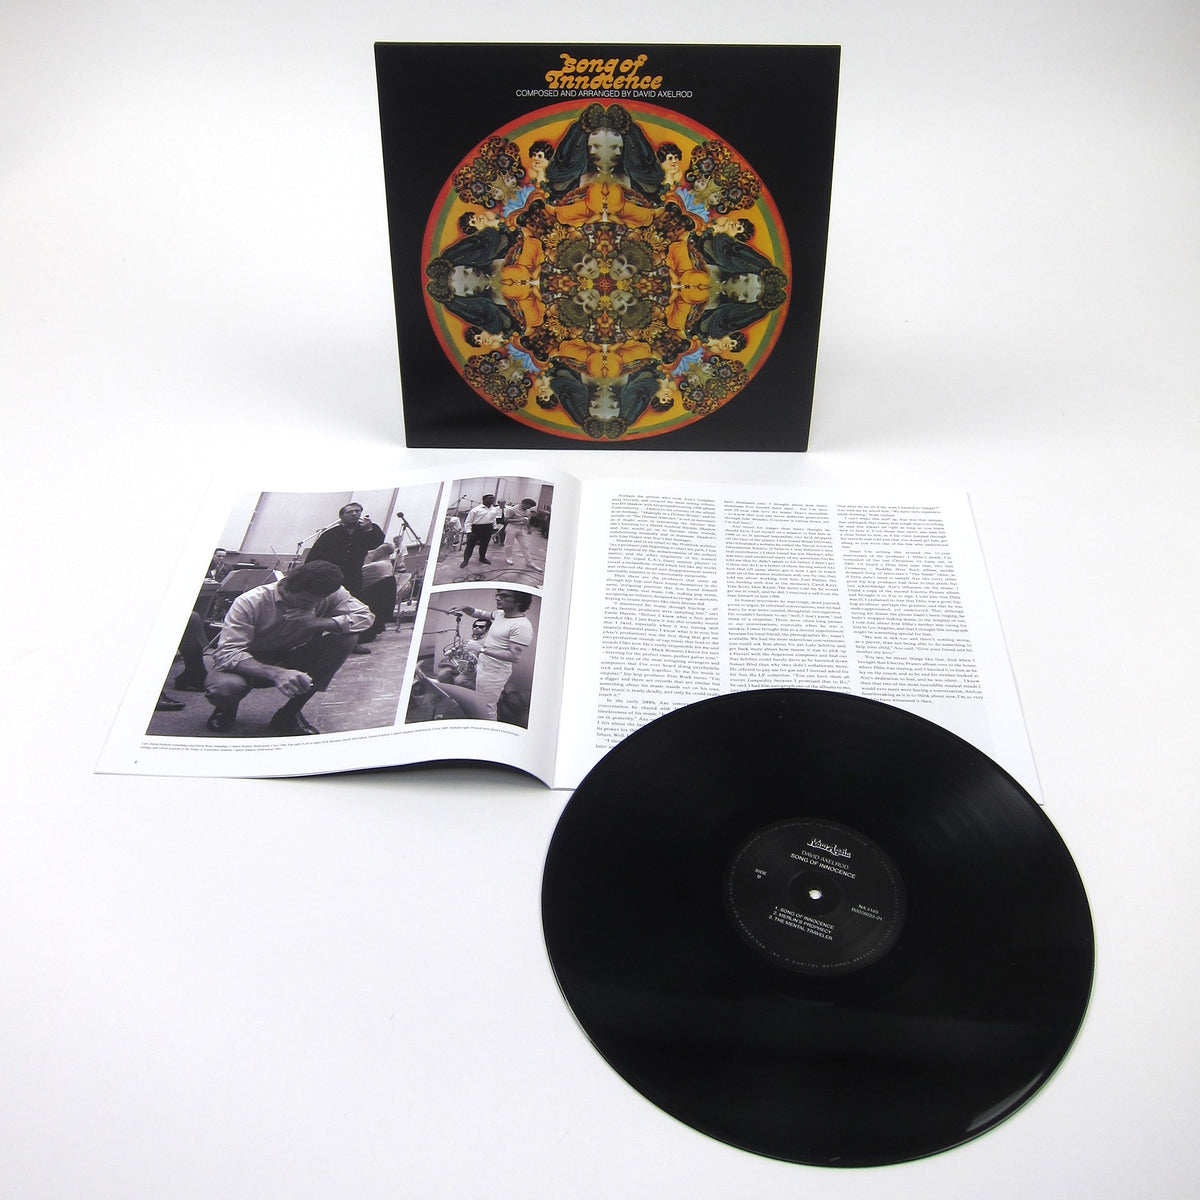 David Axelrod: Song Of Innocence Vinyl LP